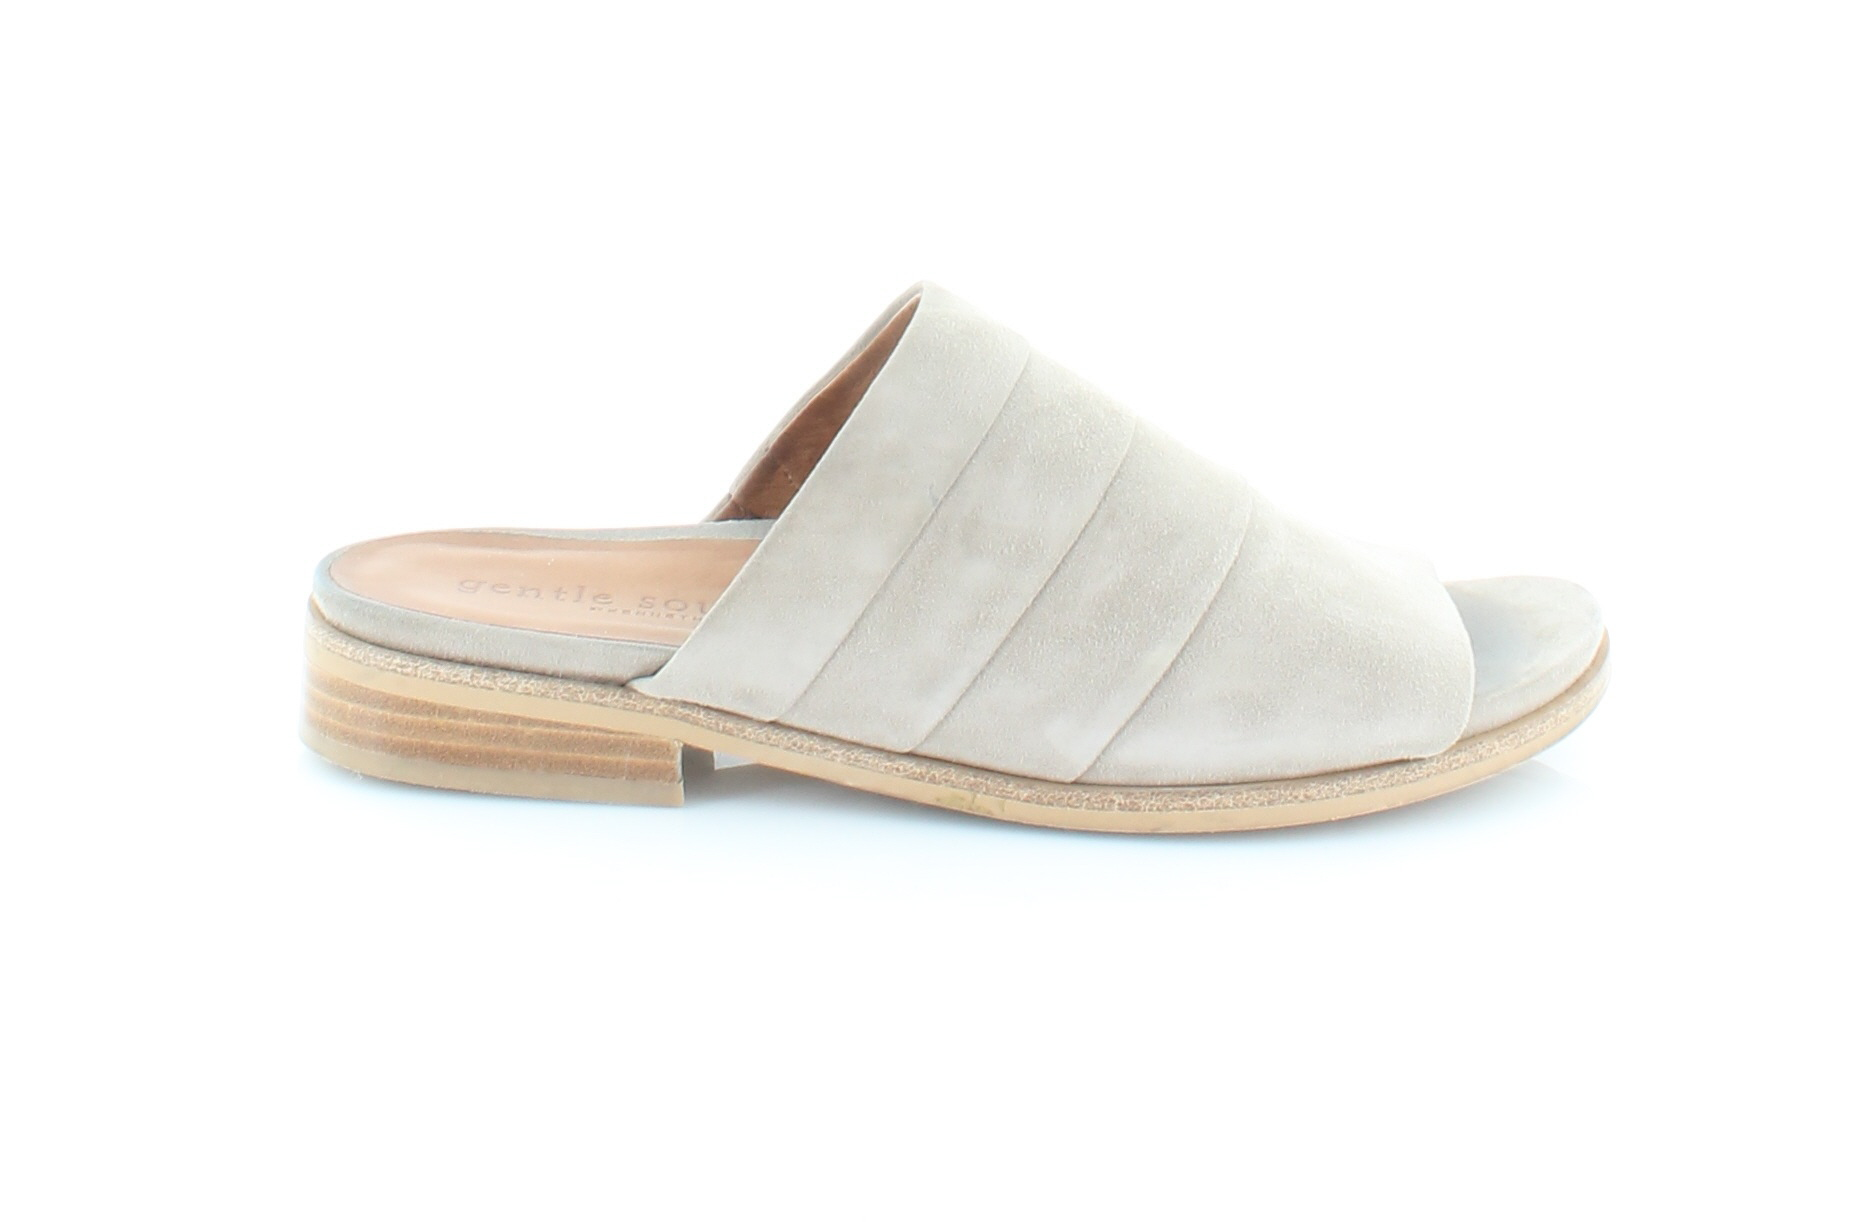 Gentle Souls Gayle Brown Womens shoes Size 11 M Sandals MSRP  179